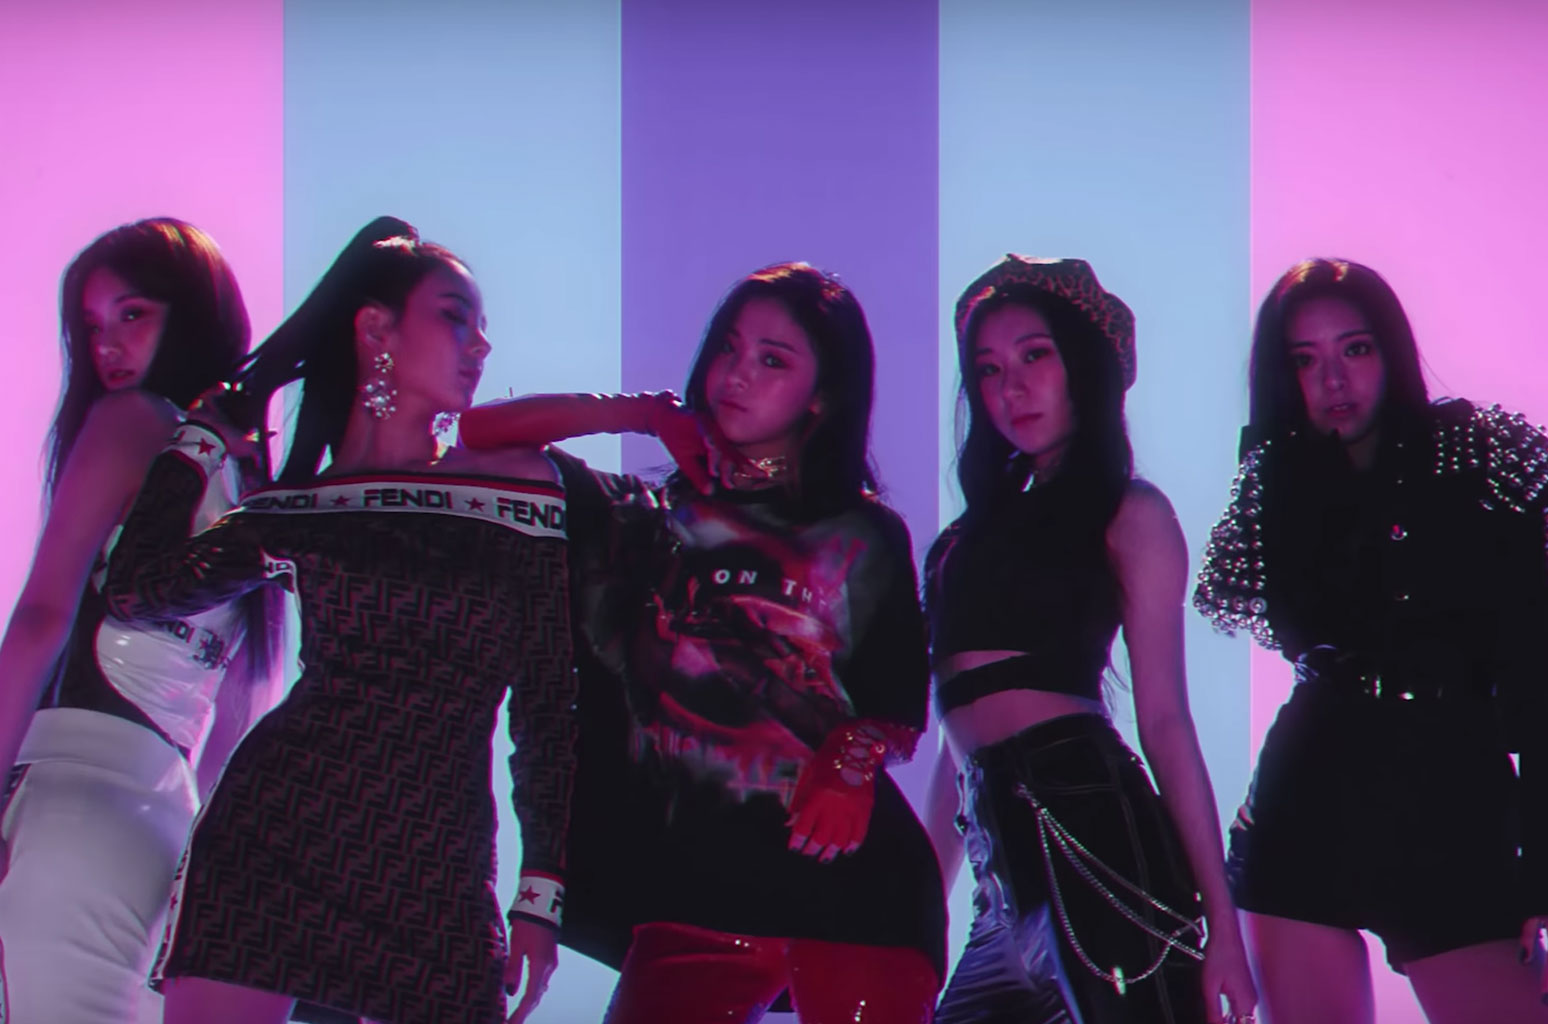 ITZY: All 5 ITZY Members Share This One Characteristic, And It's